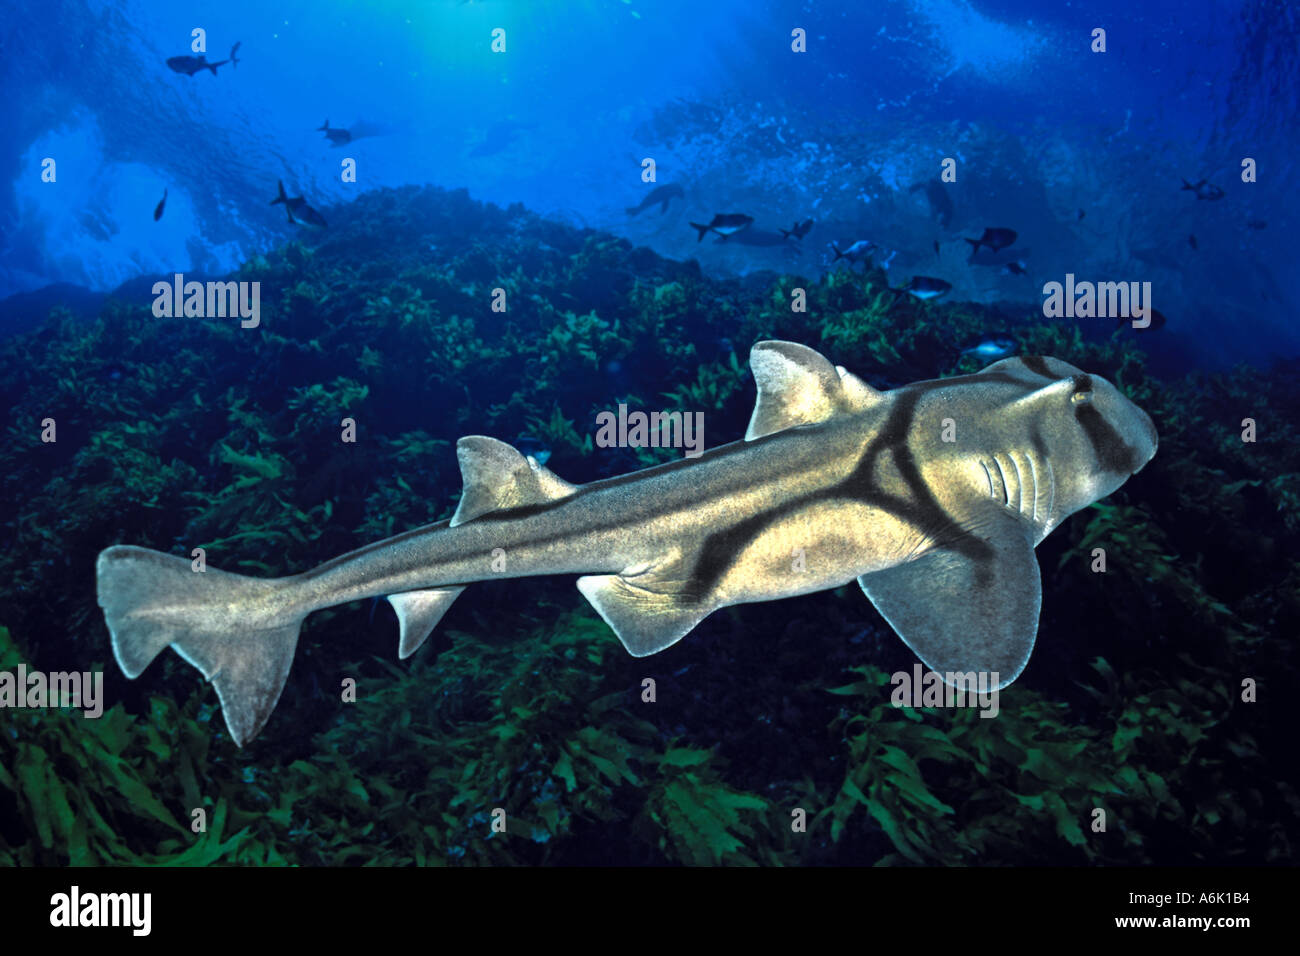 Port Jackson shark Heterodontus portusjacksoni South Australia - Stock Image